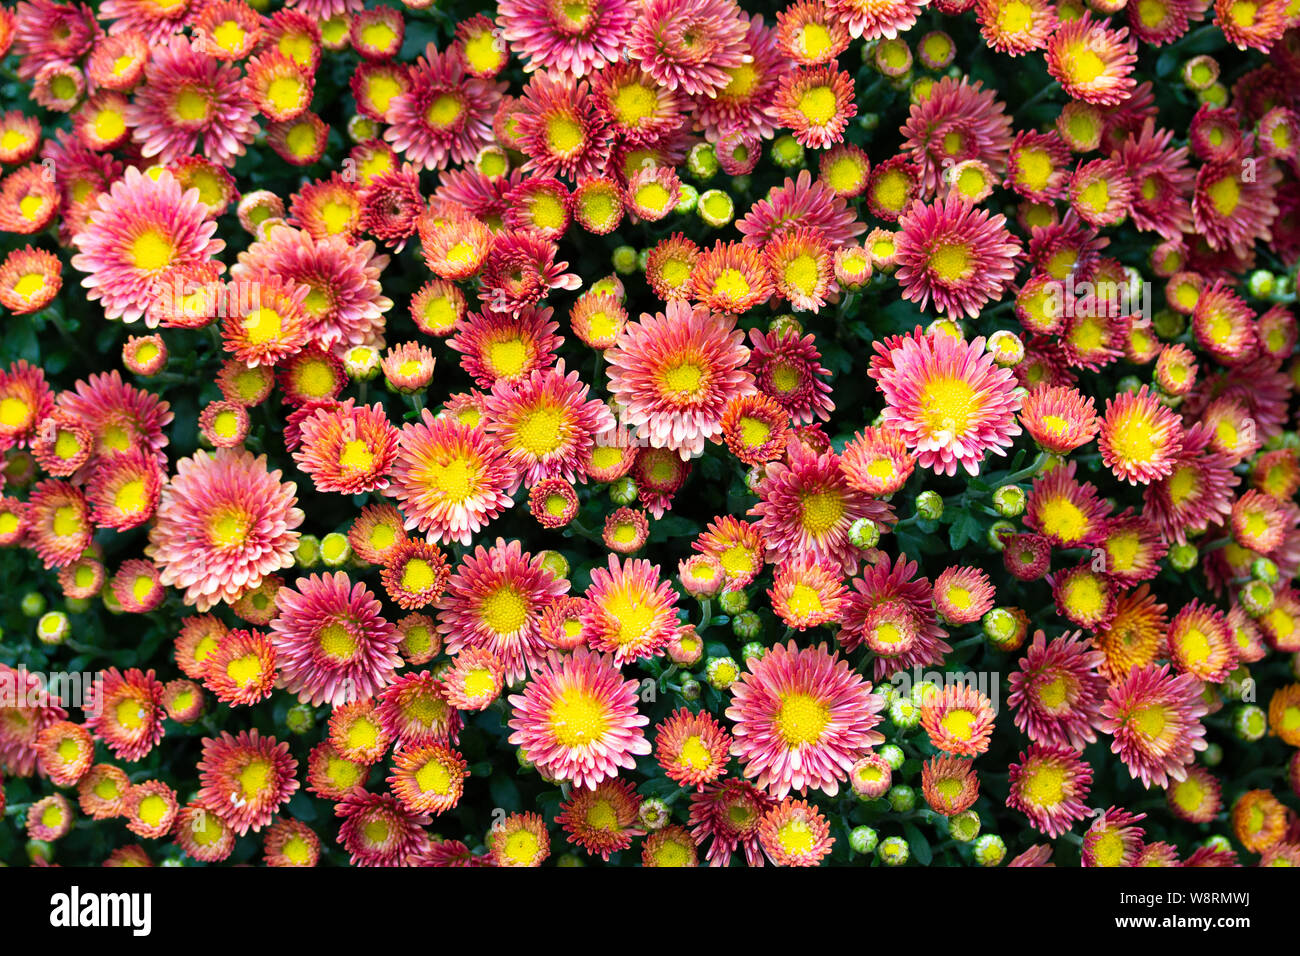 Red-yellow flowers wallpaper, chrysanthemum aster daisy. Multicolored flowers, small heads of perennial flowers. Top view, inflorescences close-up Stock Photo